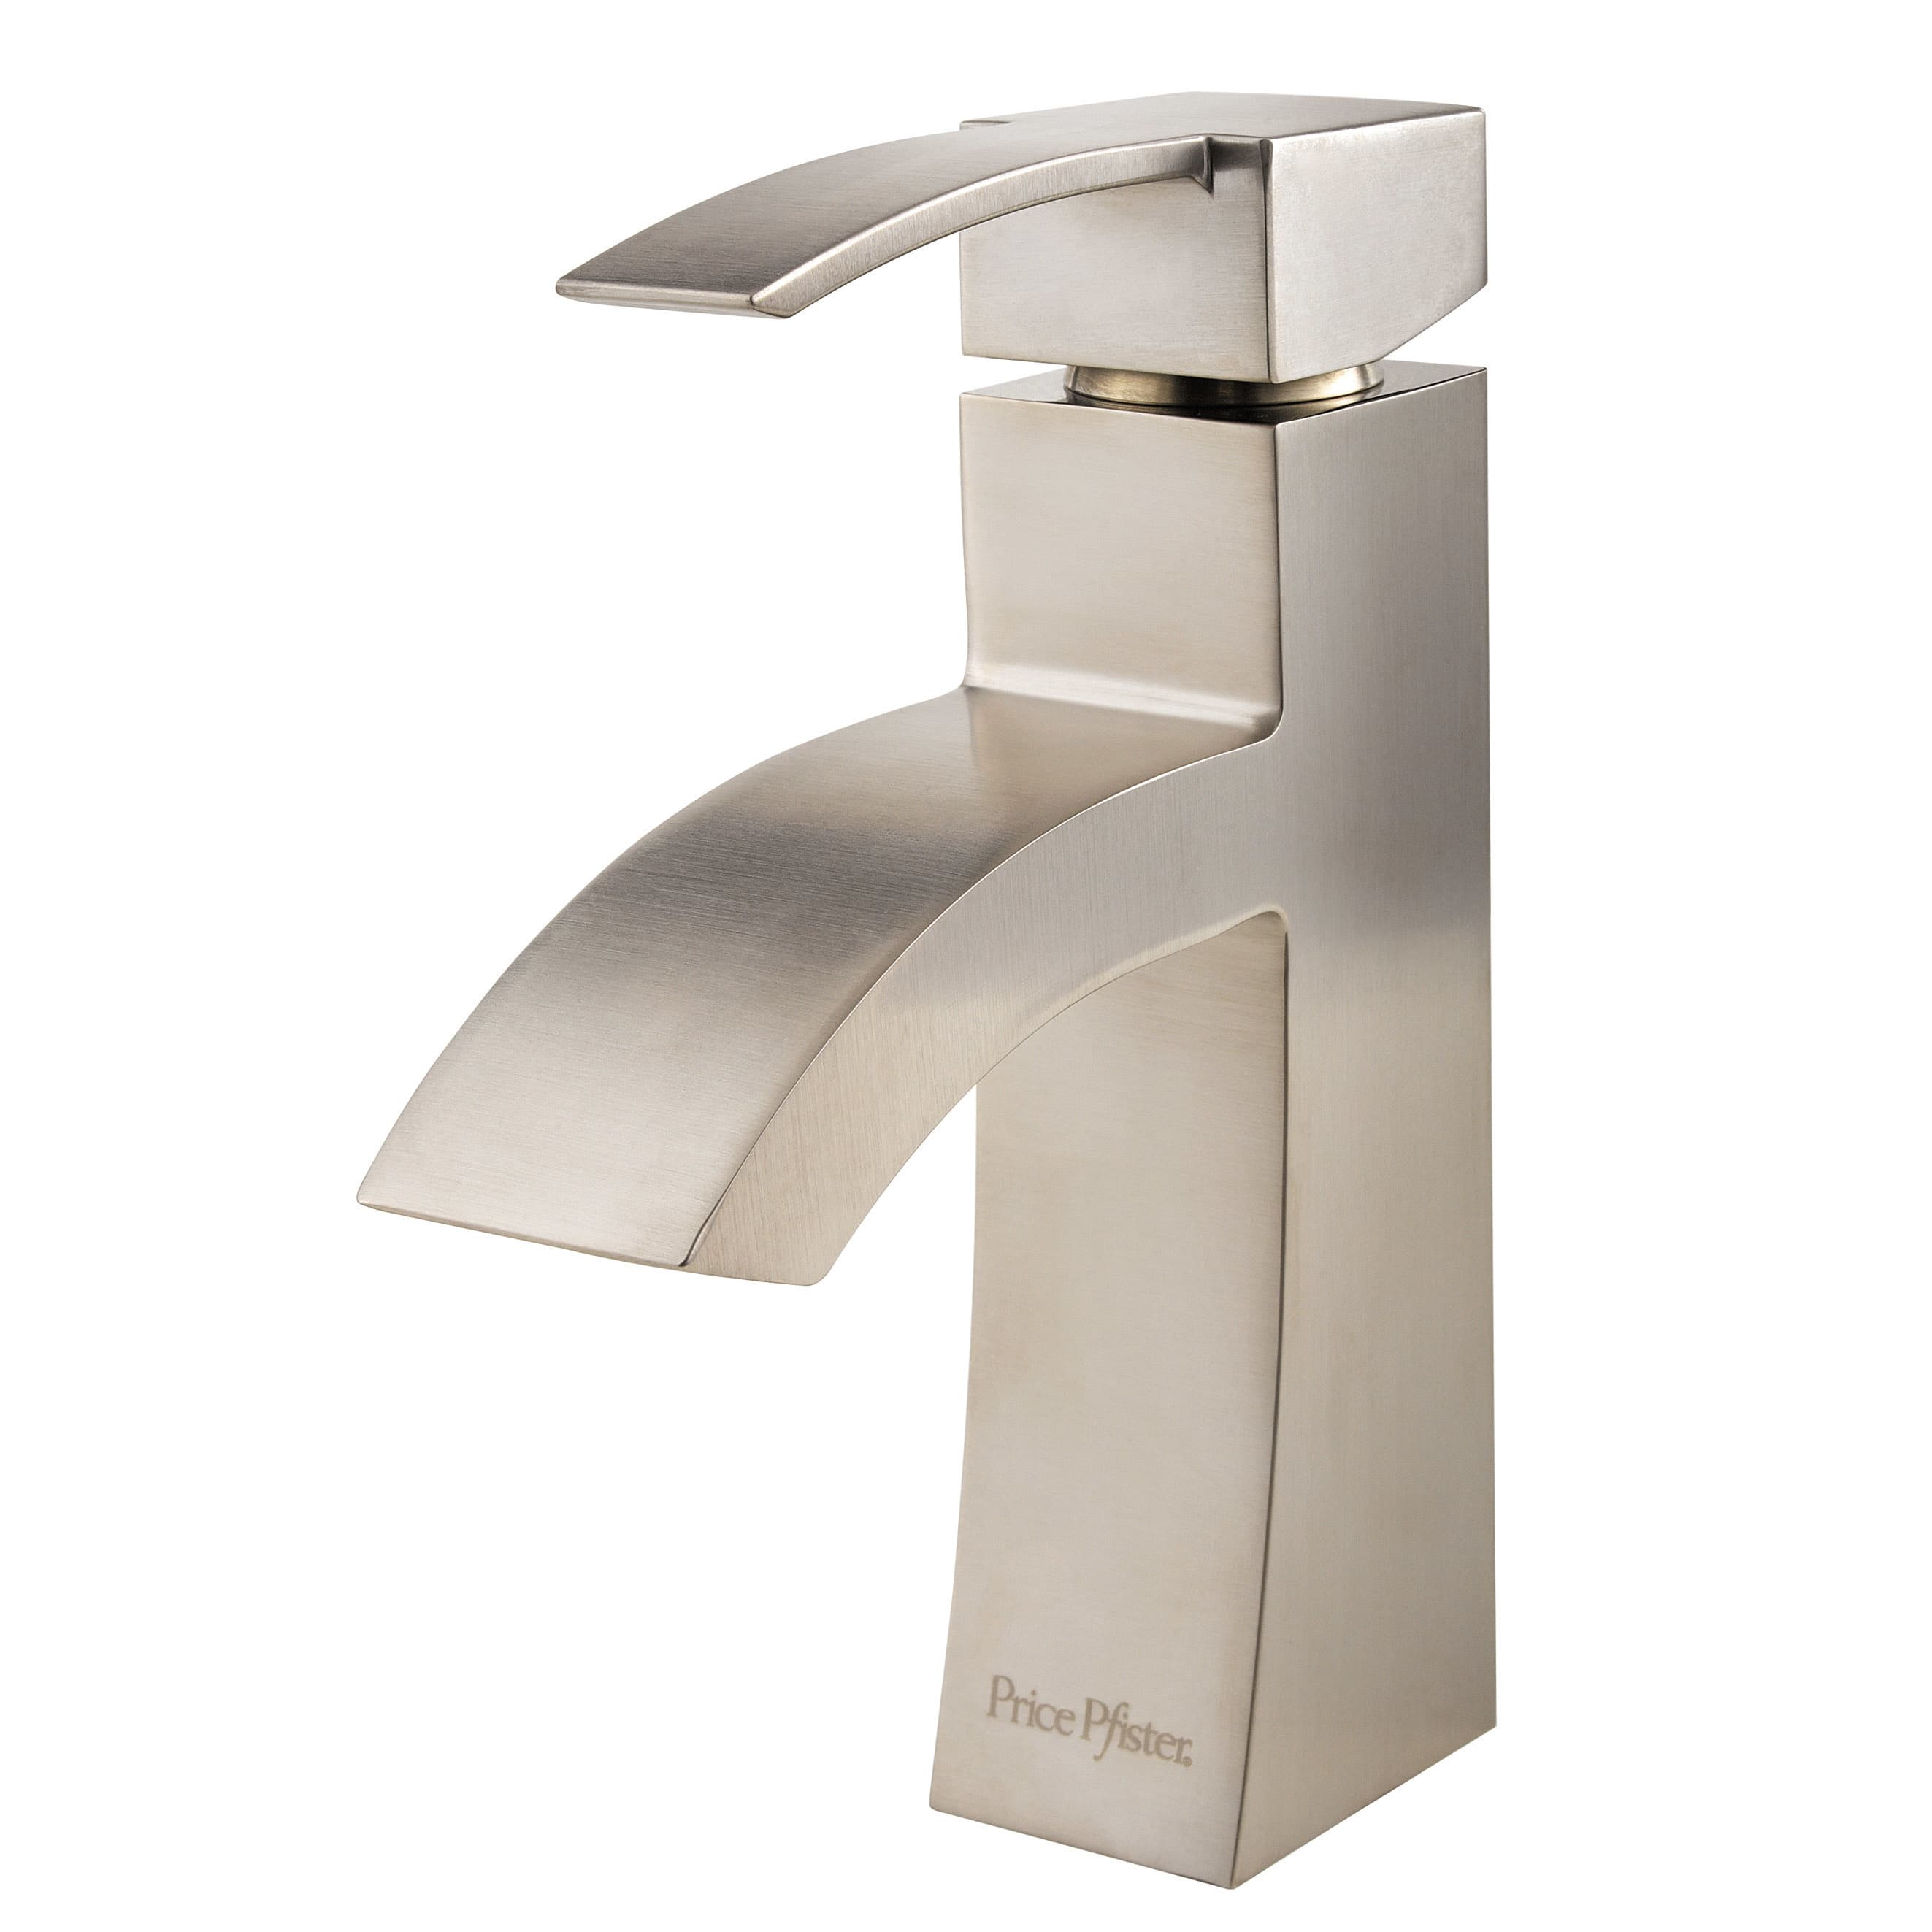 lavatory collection contour ultra product faucet widespread faucets price pfister tub